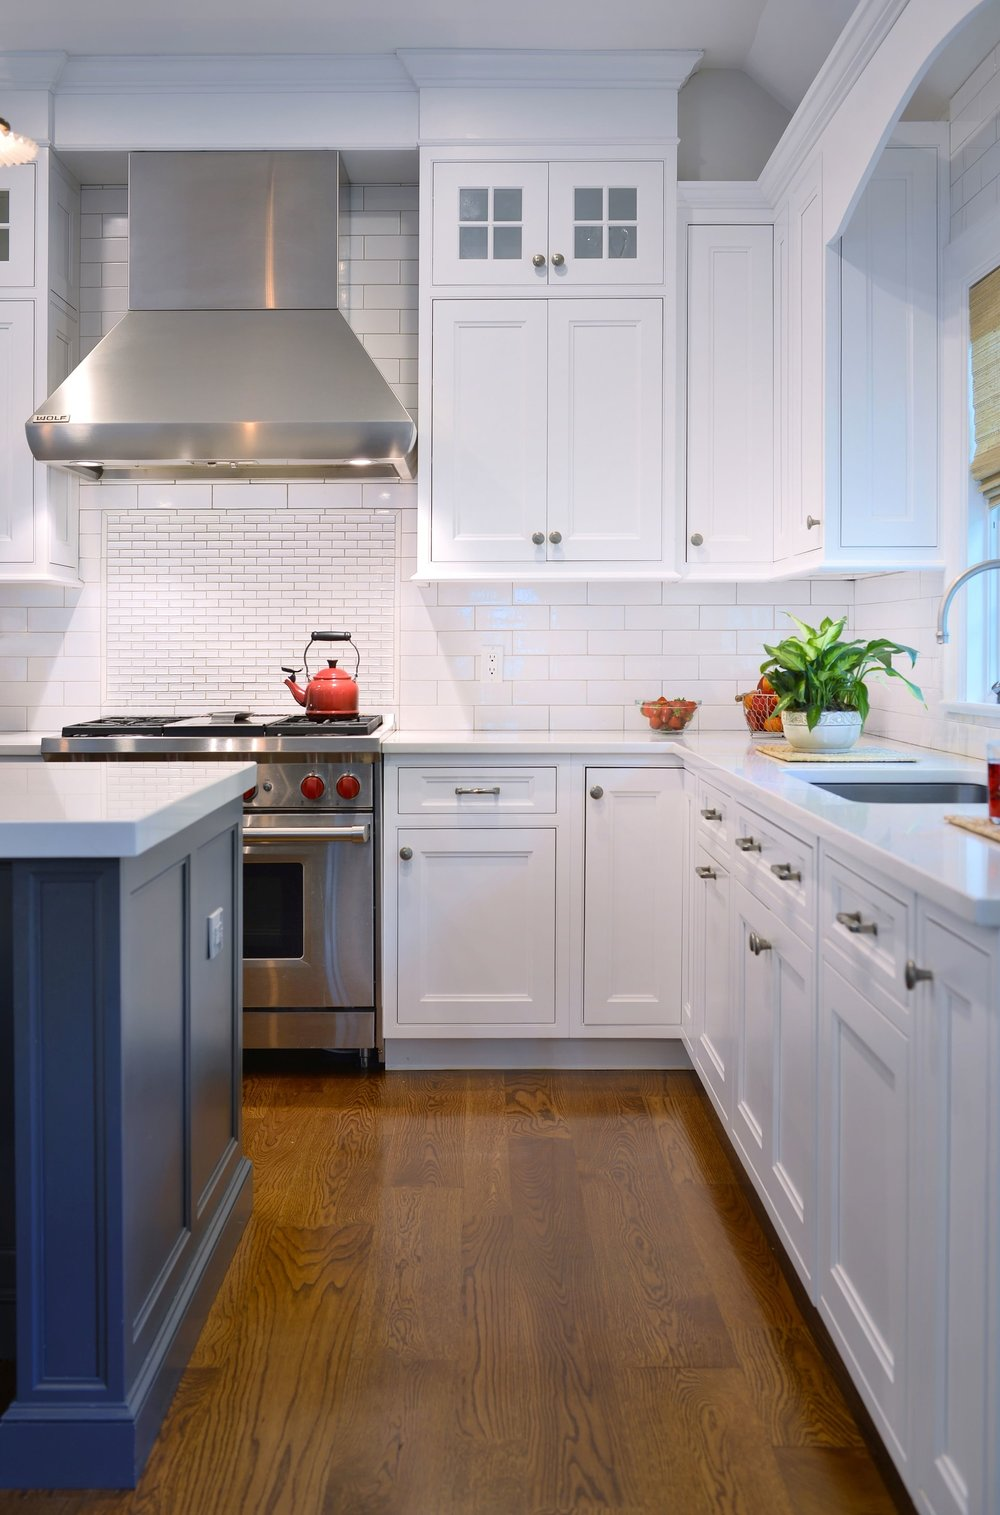 Transitional style kitchen with white upper cabinets and drawers